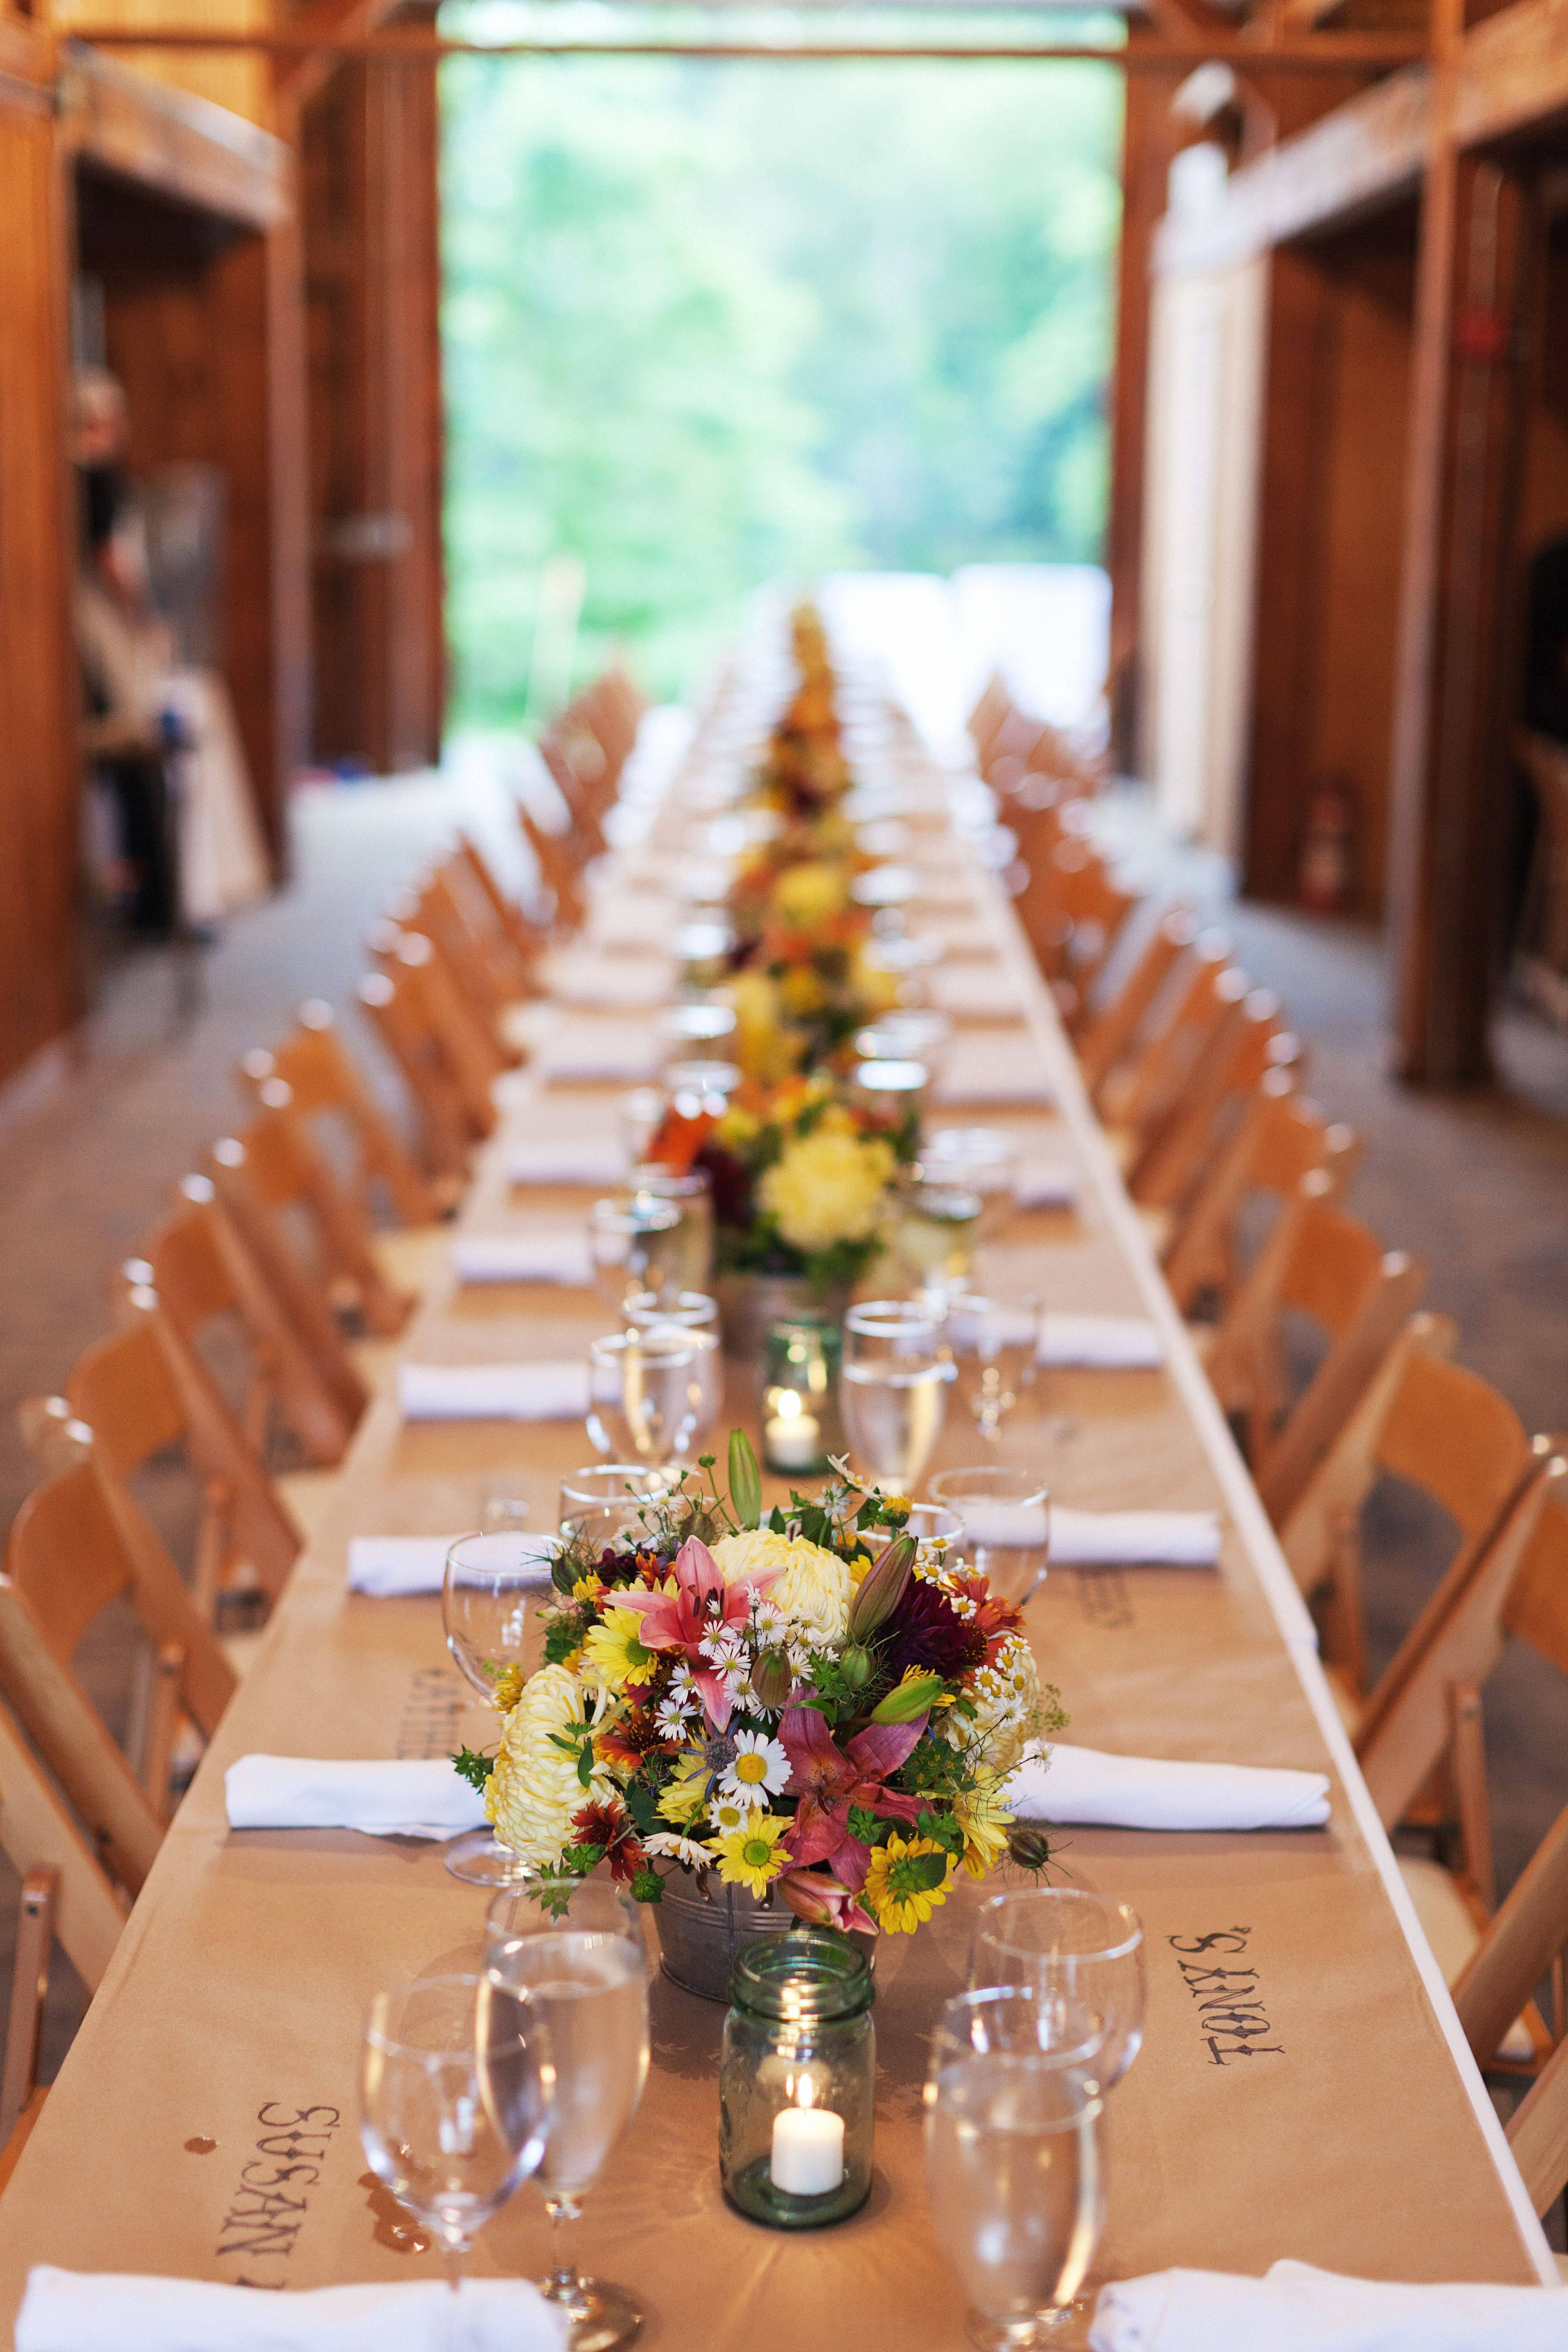 Pin by Season to Taste Catering on Our Inviting Events | Rehearsal dinner  decorations, Rustic rehearsal dinners, Outdoor rehearsal dinner